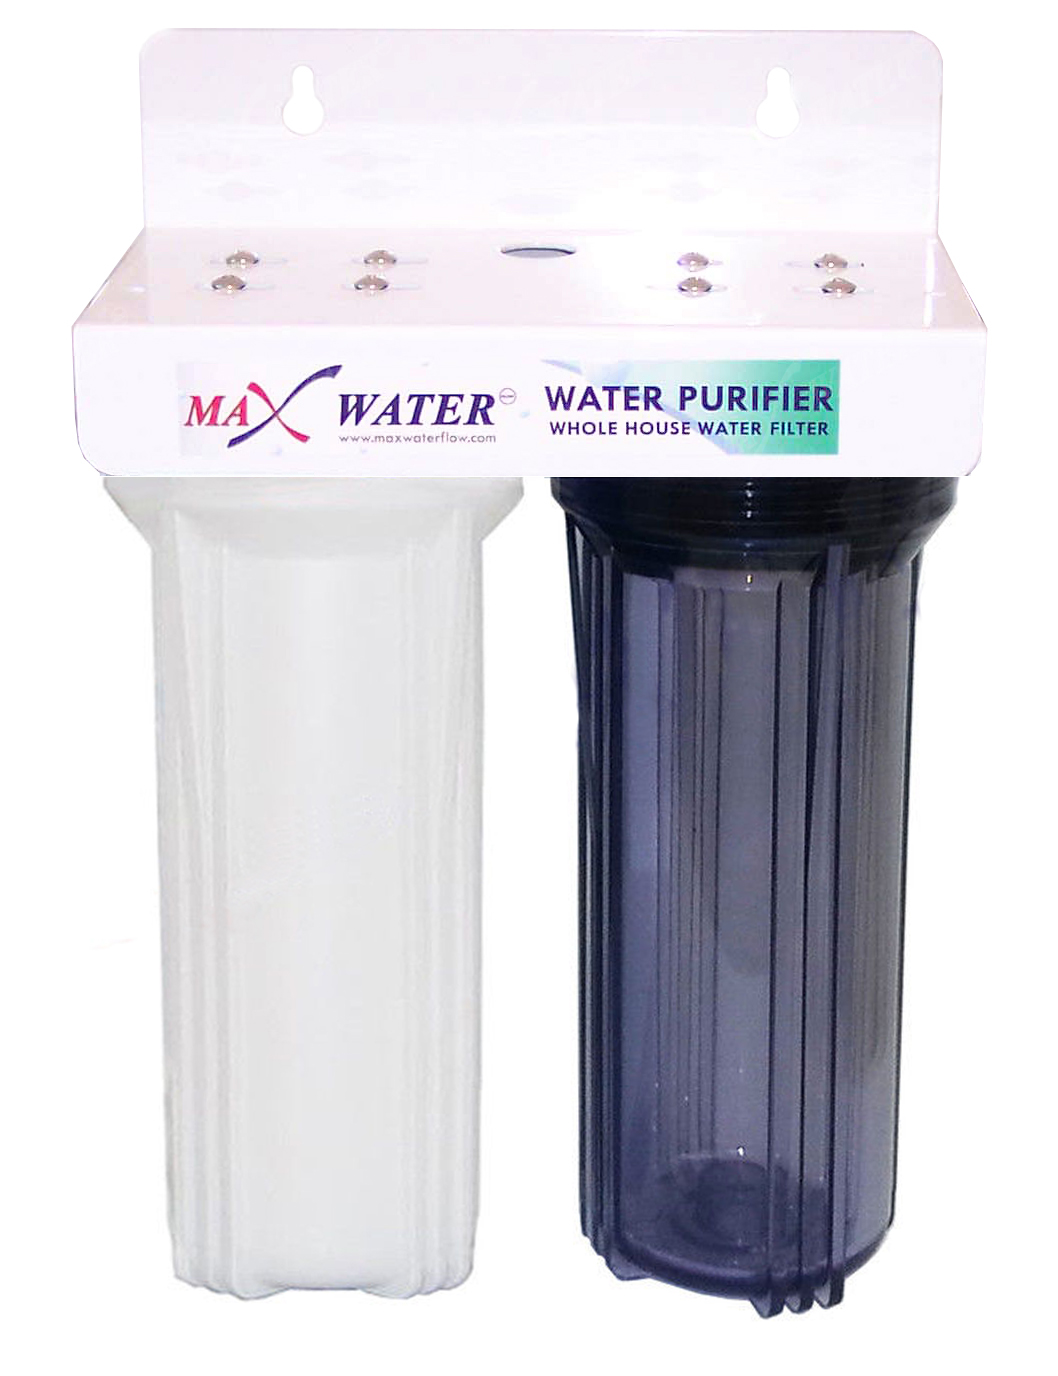 House Water Filter 2 Stage Whole House Water Filter